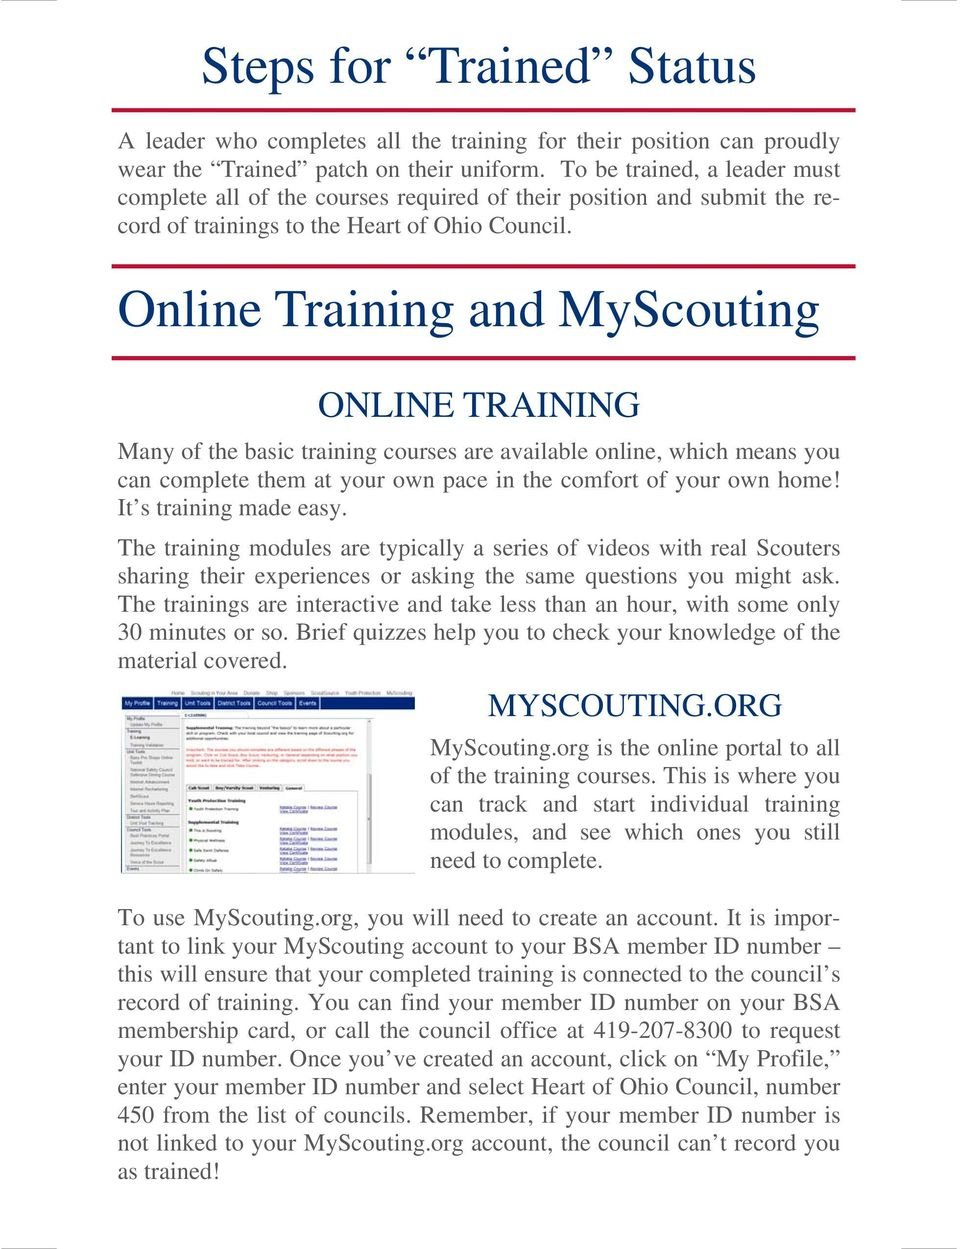 Online Training and MyScouting ONLINE TRAINING Many of the basic training courses are available online, which means you can complete them at your own pace in the comfort of your own home!